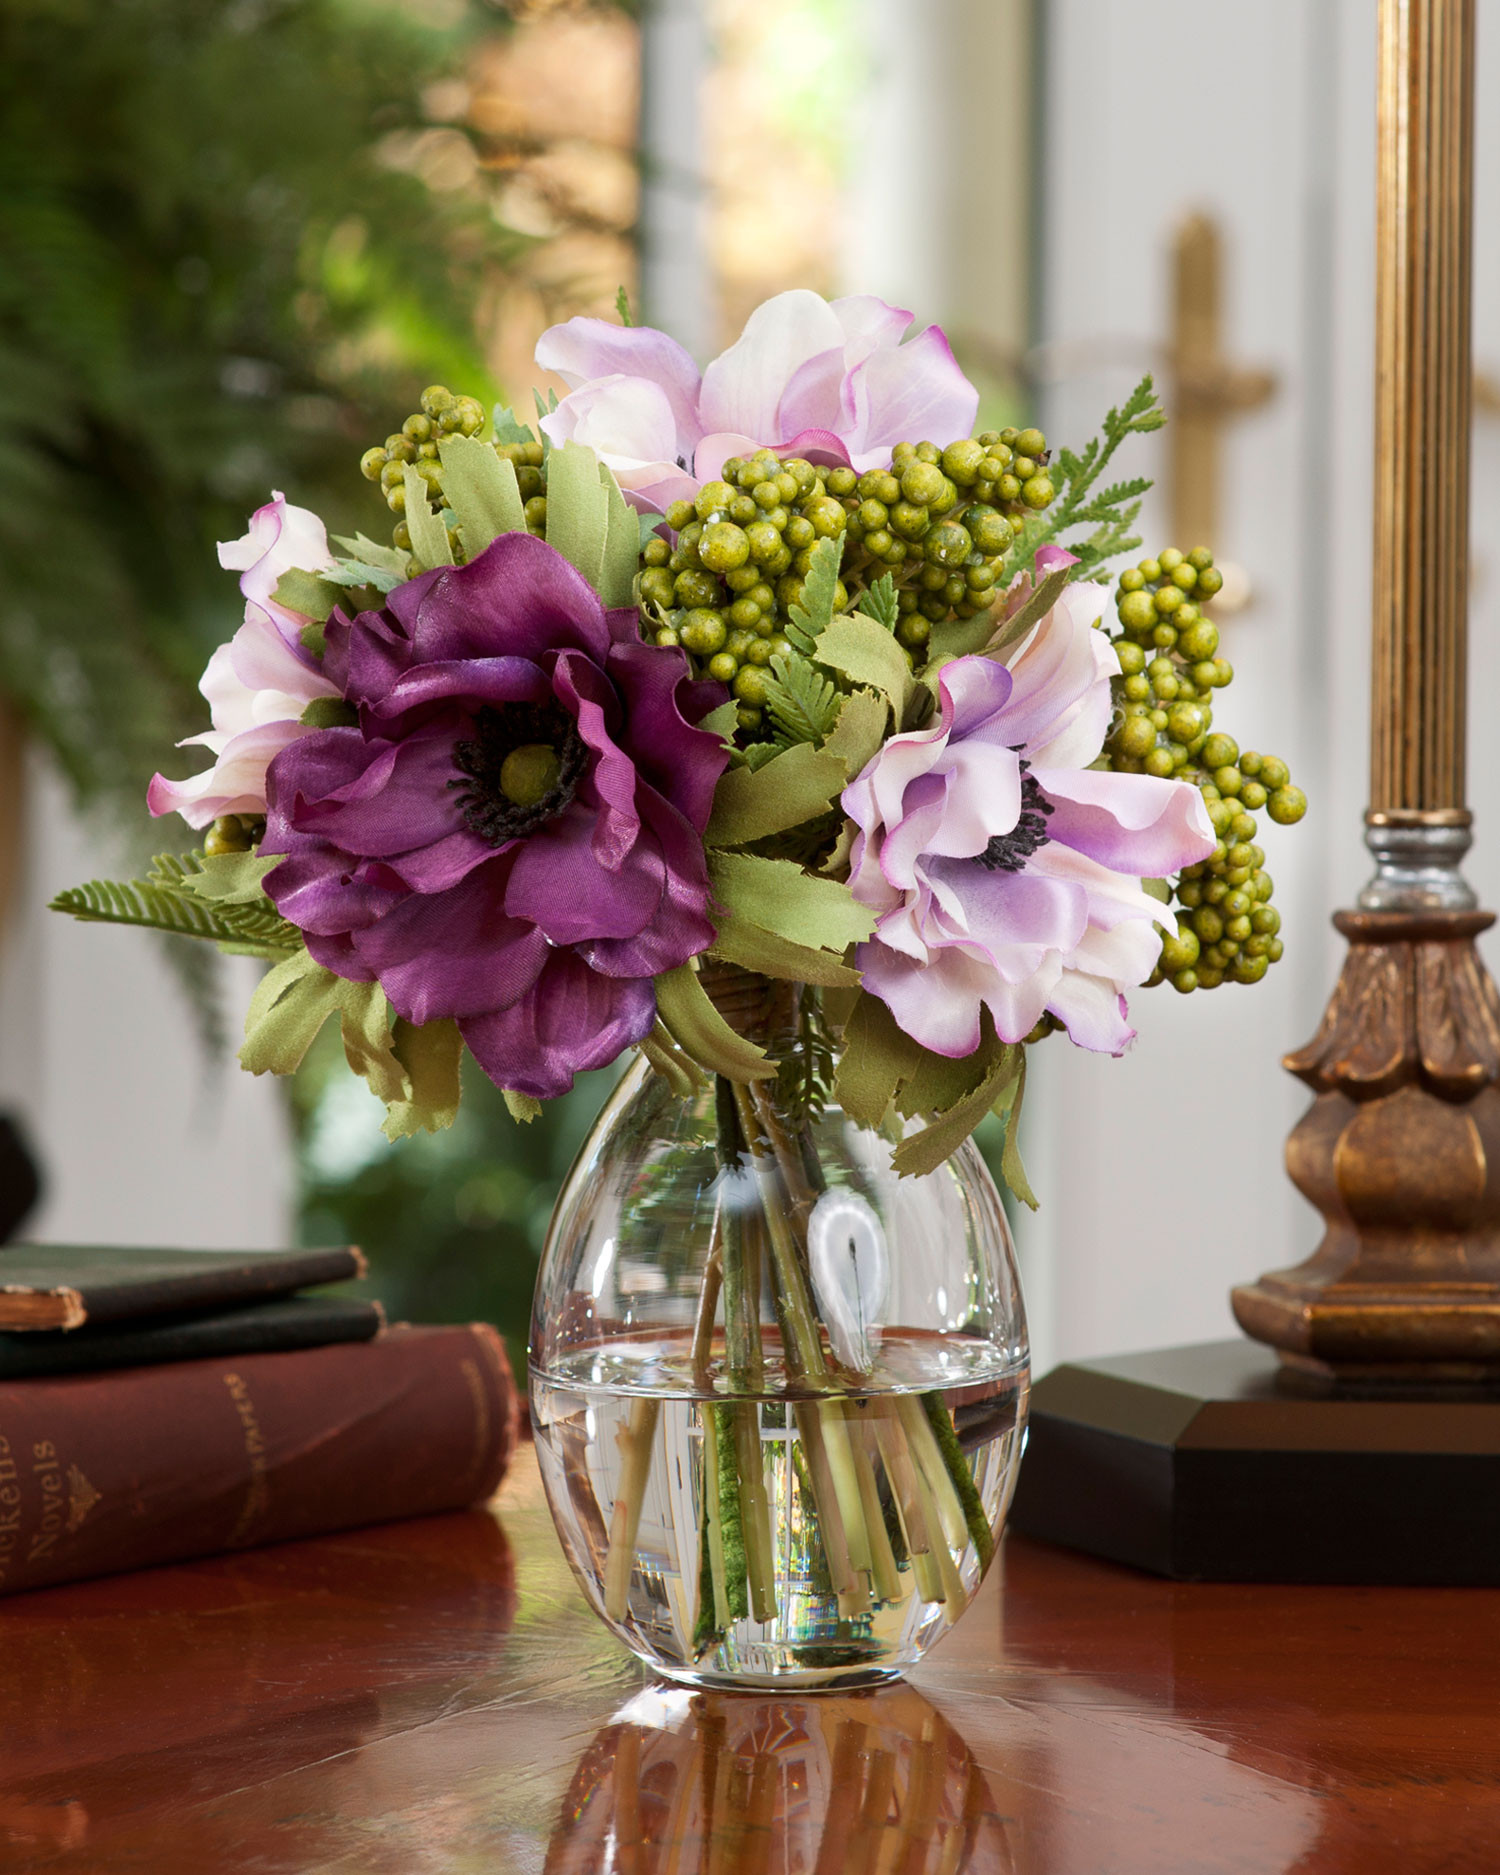 vase of lavender of purple silk flowers in vase flowers healthy intended for berry and anemone accent in lavender purple with green berries in a shapely gl vase berry anemone silk flower accent arrangment at petals